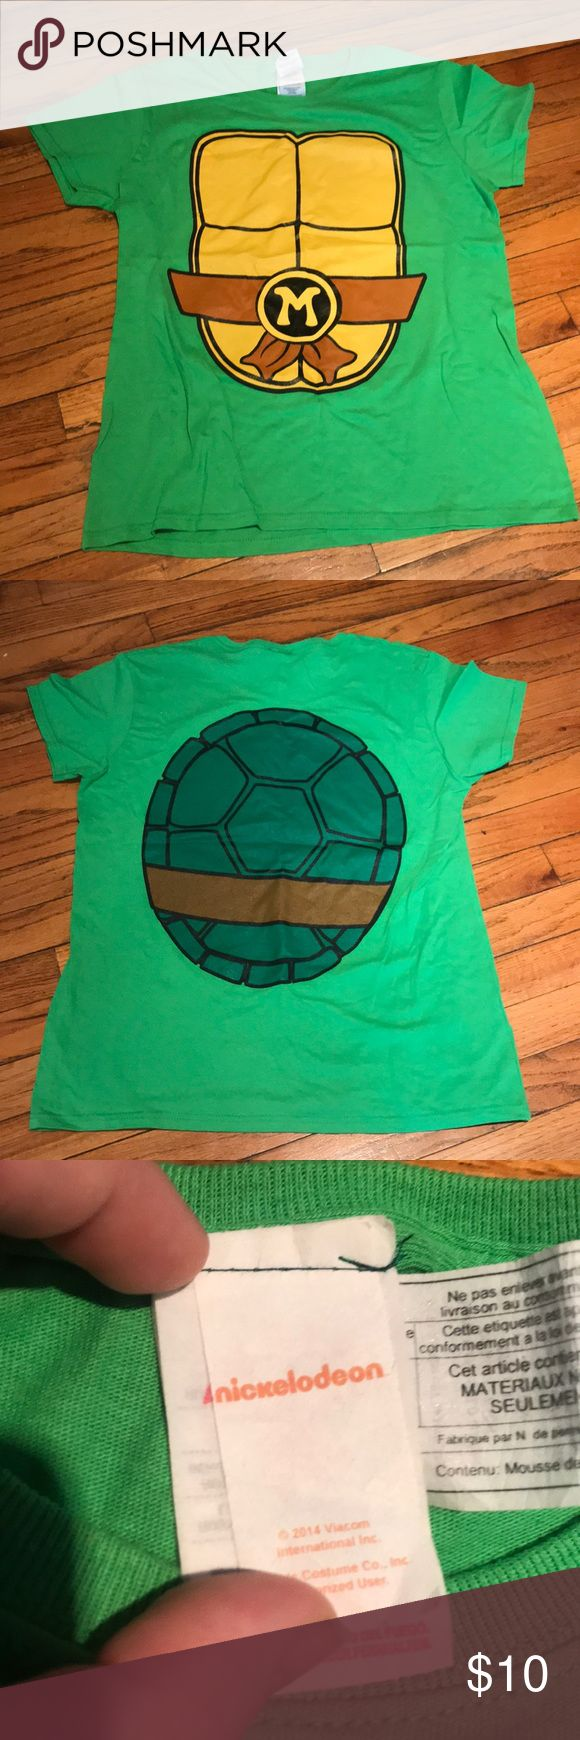 Women's Cosplay Costume Ninja Turtle T-Shirt Bought for Halloween a few years back, never worn. Cute Ninja Turtle T-Shirt. Perfect for cosplay or a costume party. Size Large. Nickelodeon Tops Tees - Short Sleeve